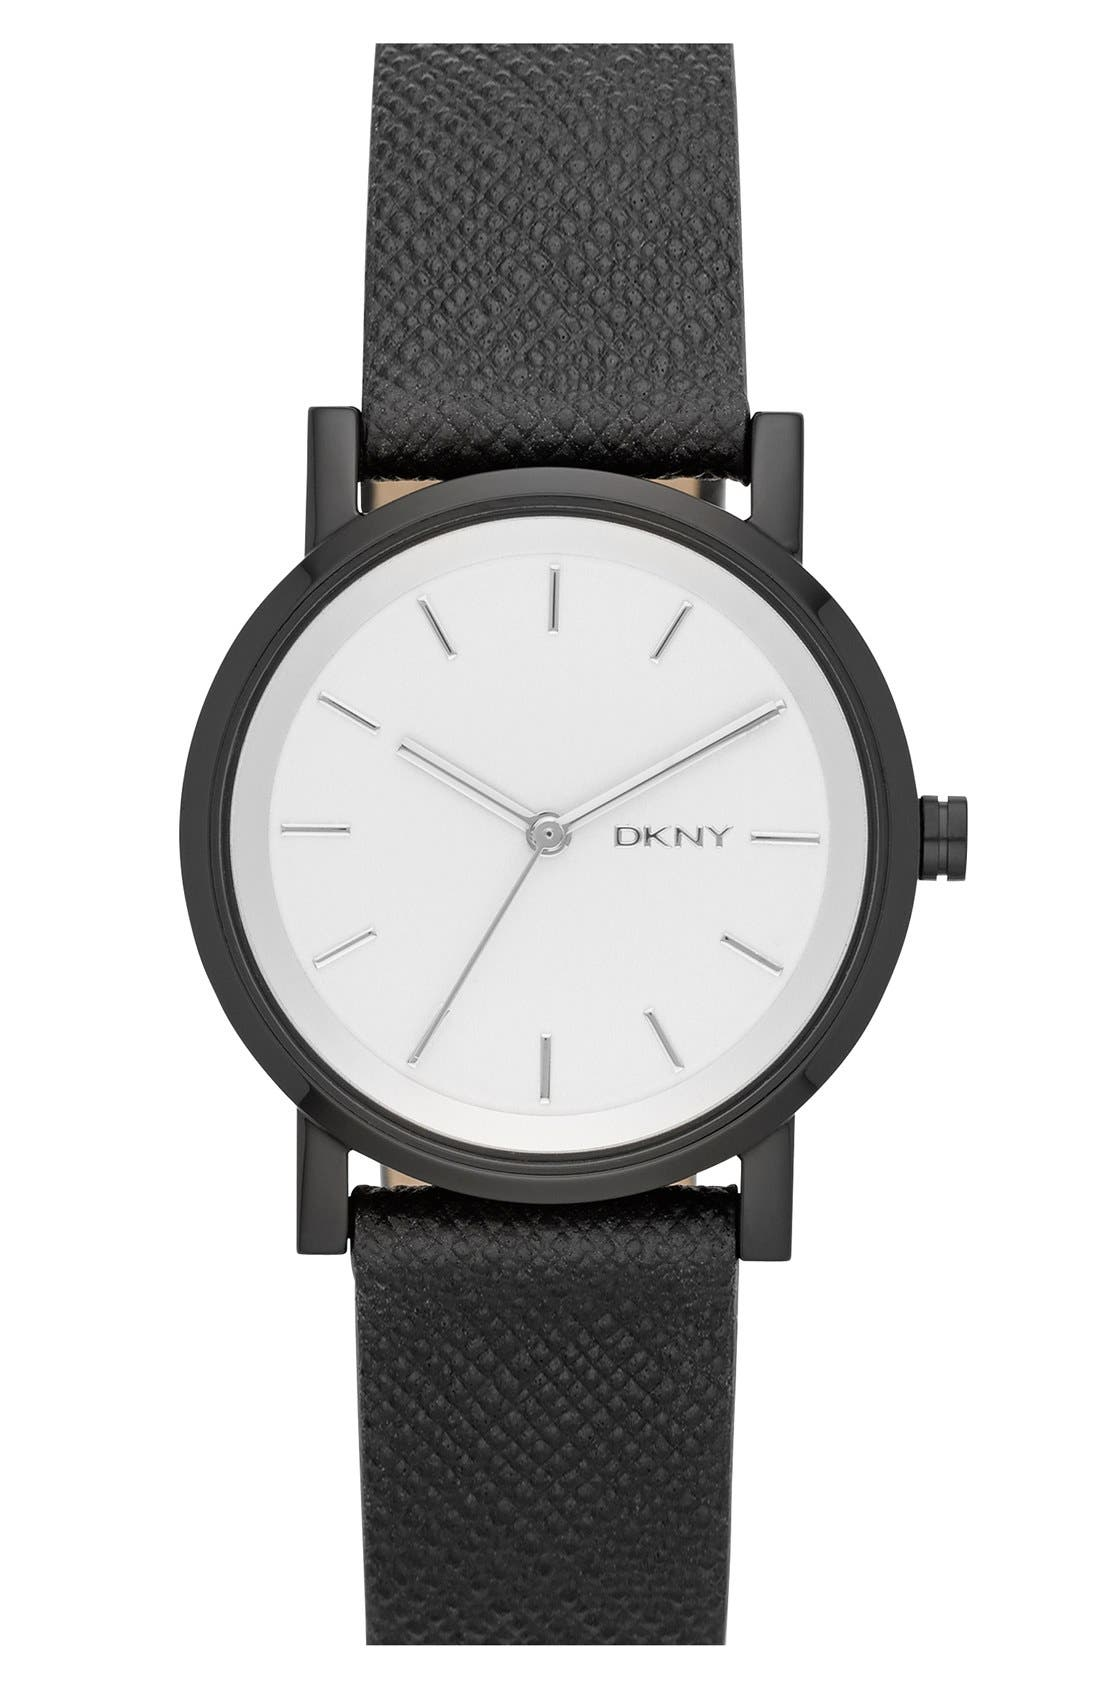 Main Image - DKNY 'Soho' Round Leather Strap Watch, 34mm